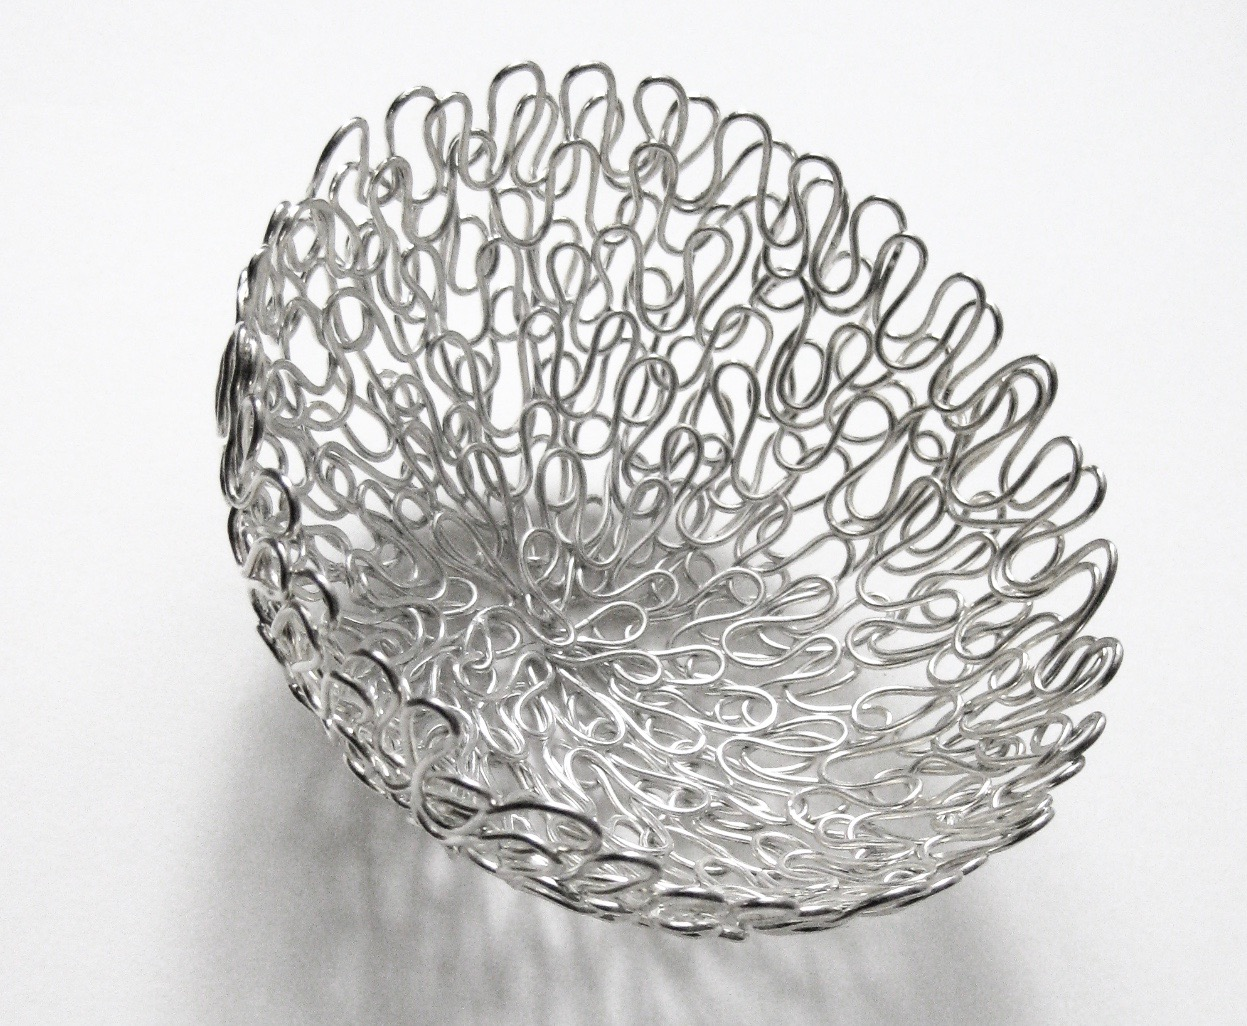 'Full of Life' Woven Round Basket, 2013, Silver Plated Copper